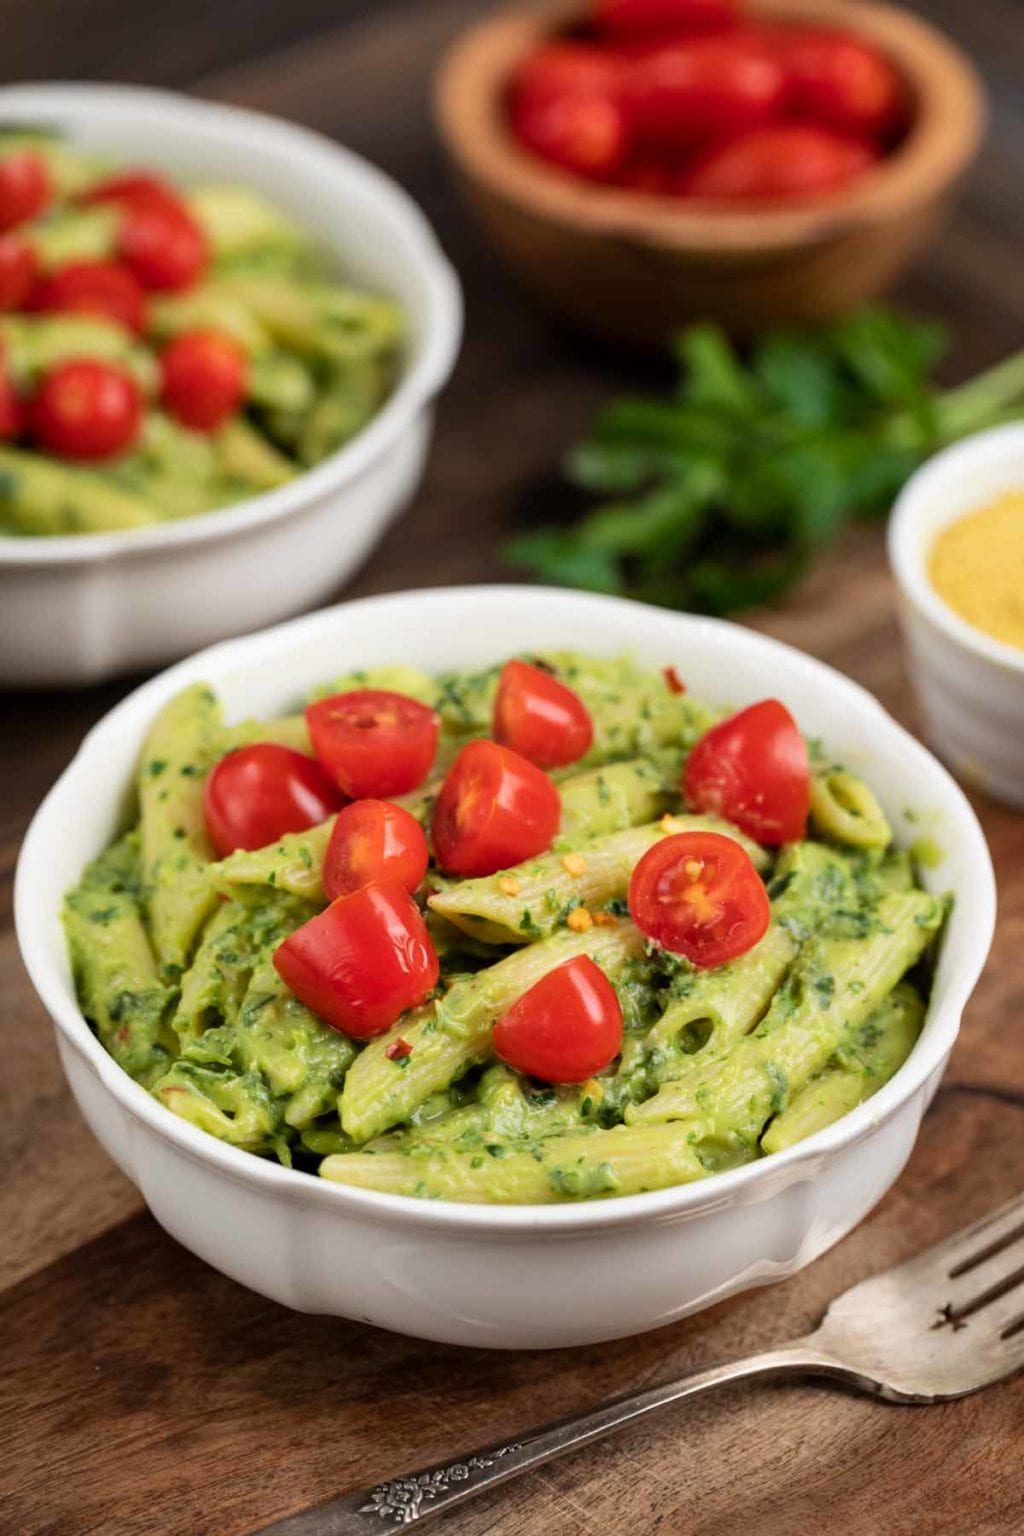 Avocado pasta in a bowl